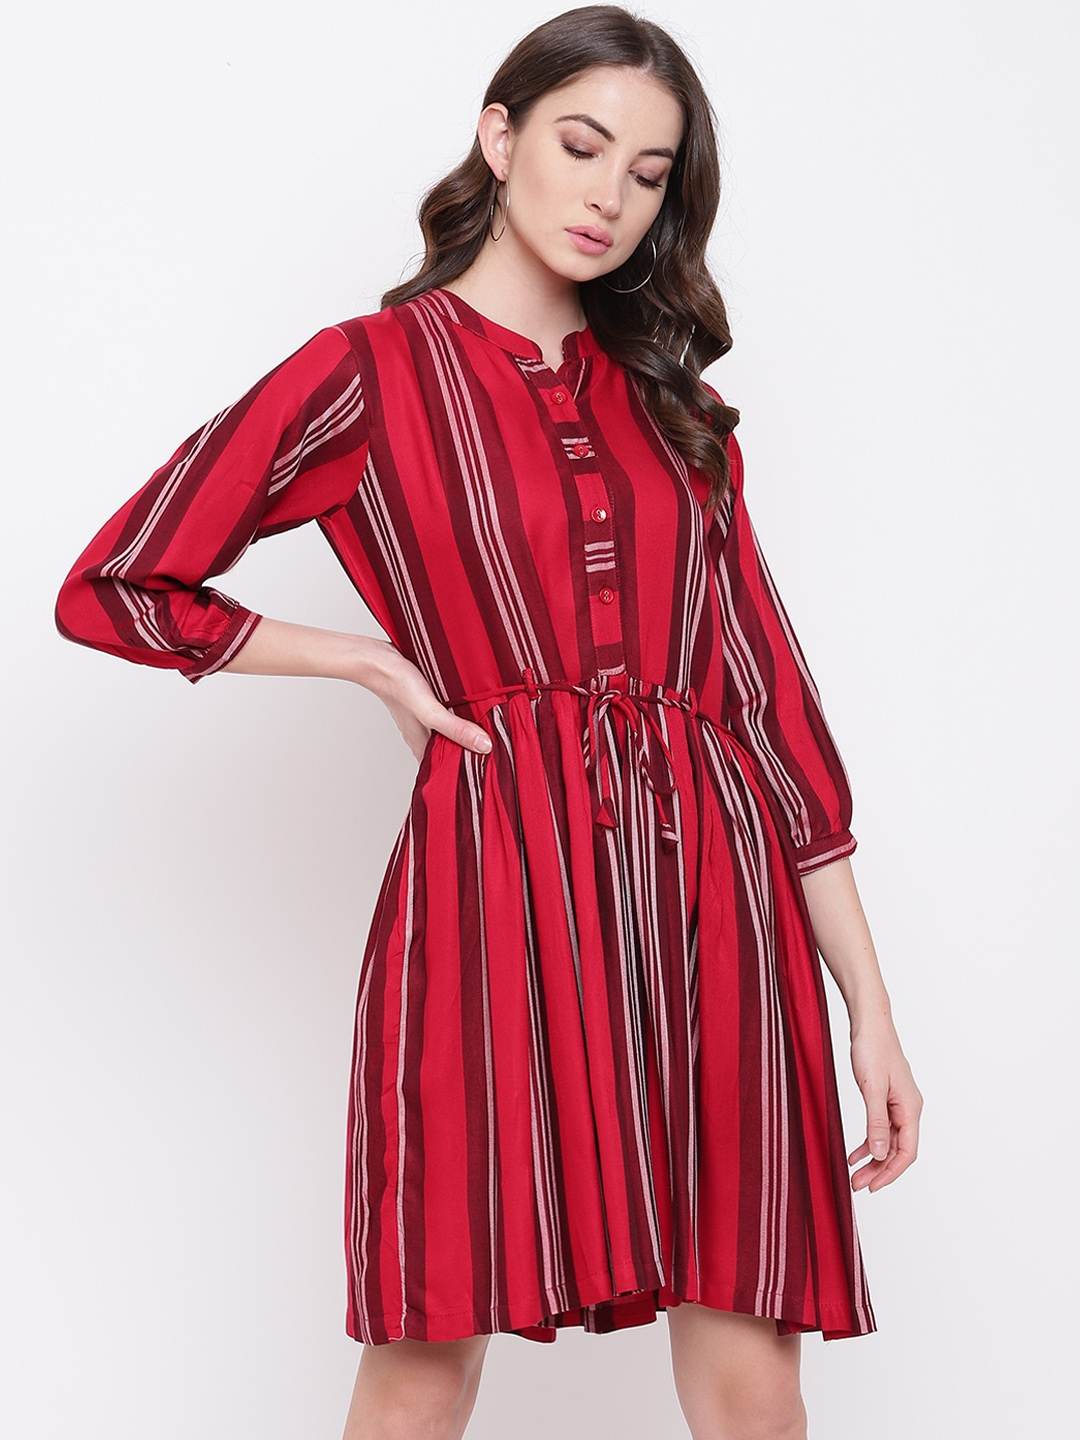 M   S FASHION Women Maroon Striped Fit and Flare Dress